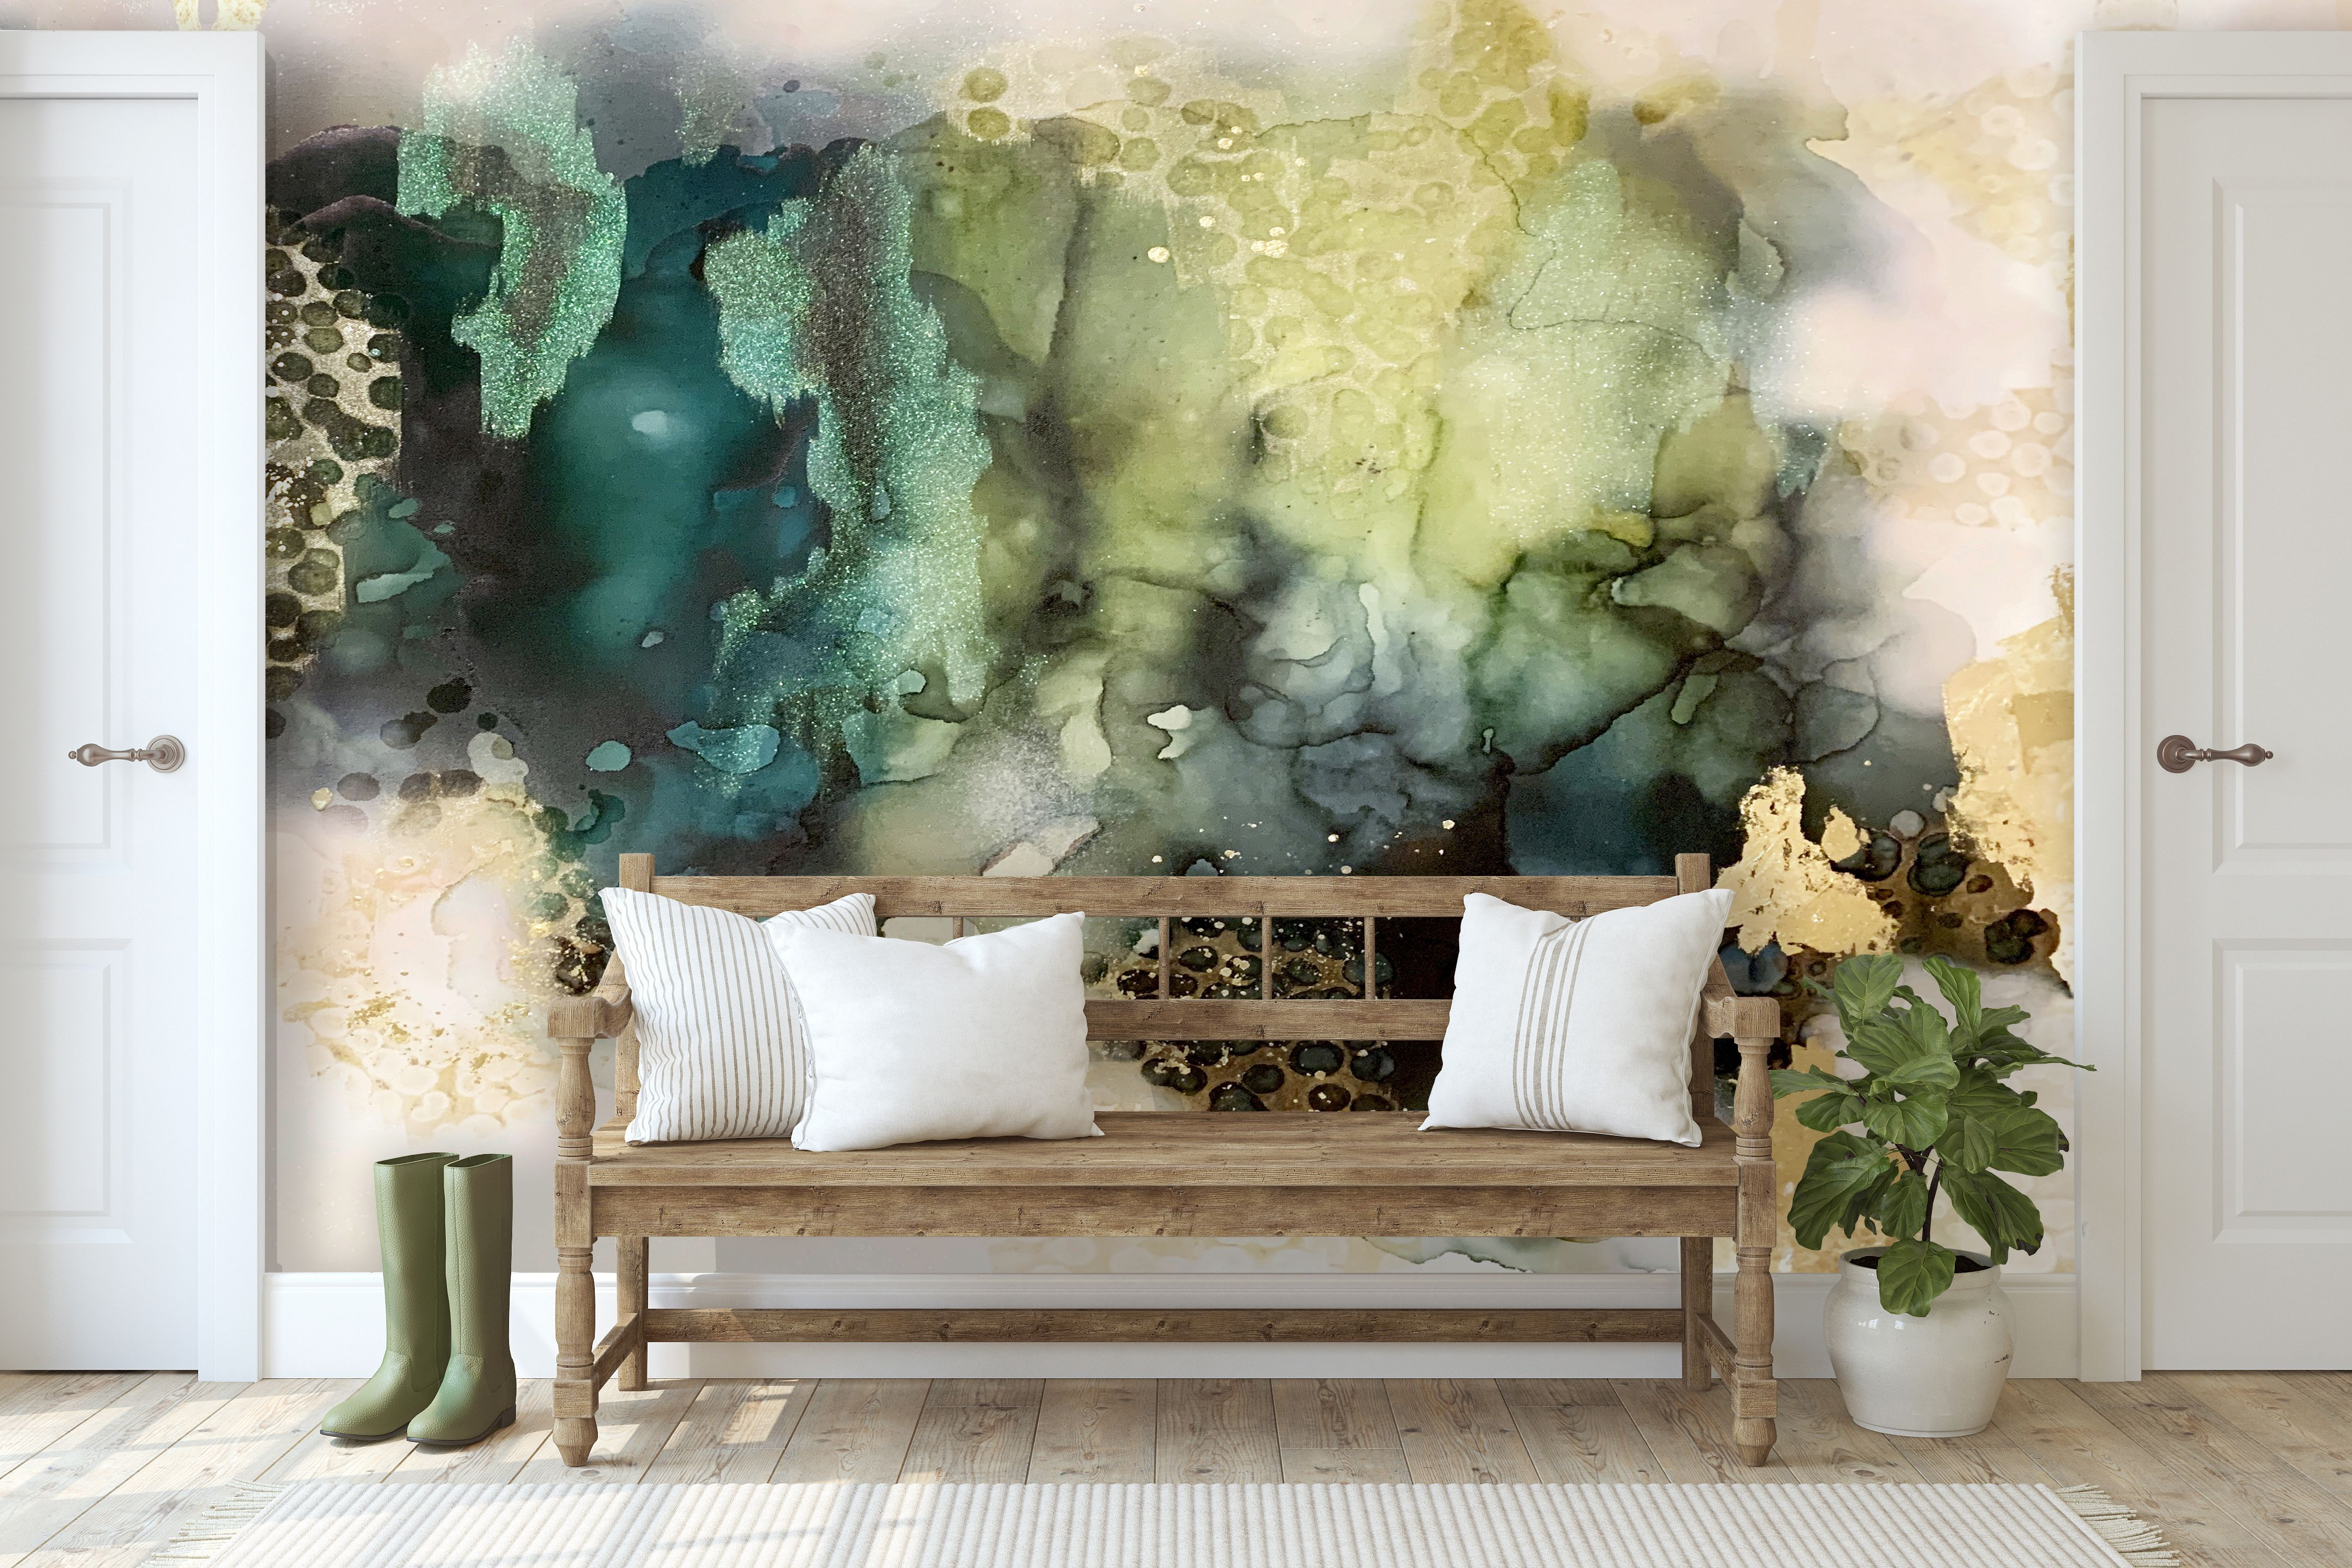 Emerald Storm Wall Mural 9' tall x 10' wide (With images